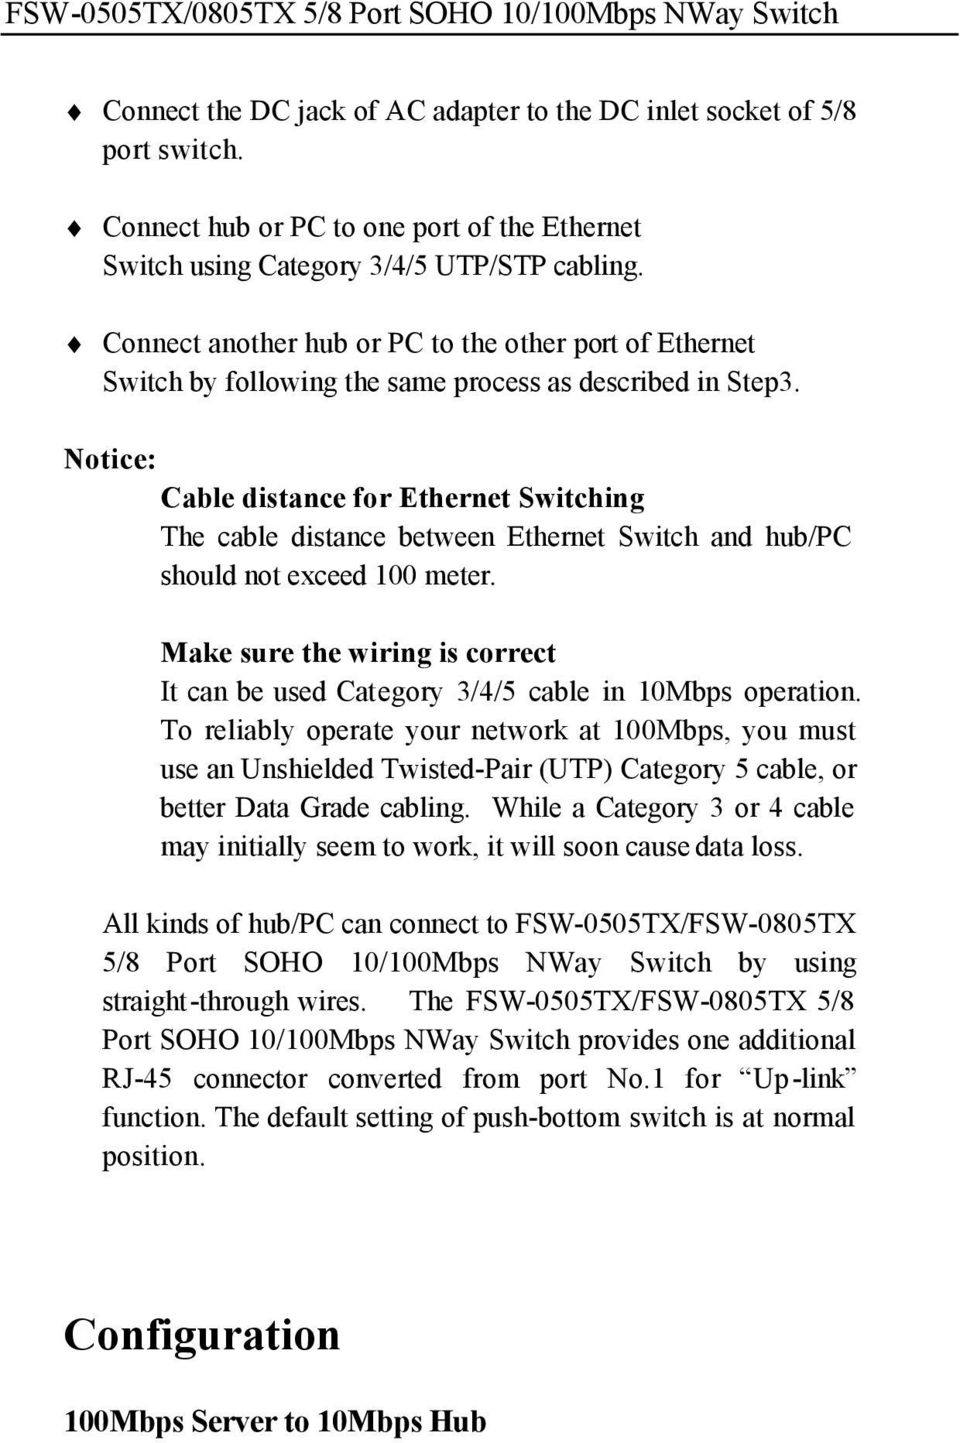 Notice: Cable distance for Ethernet Switching The cable distance between Ethernet Switch and hub/pc should not exceed 100 meter.